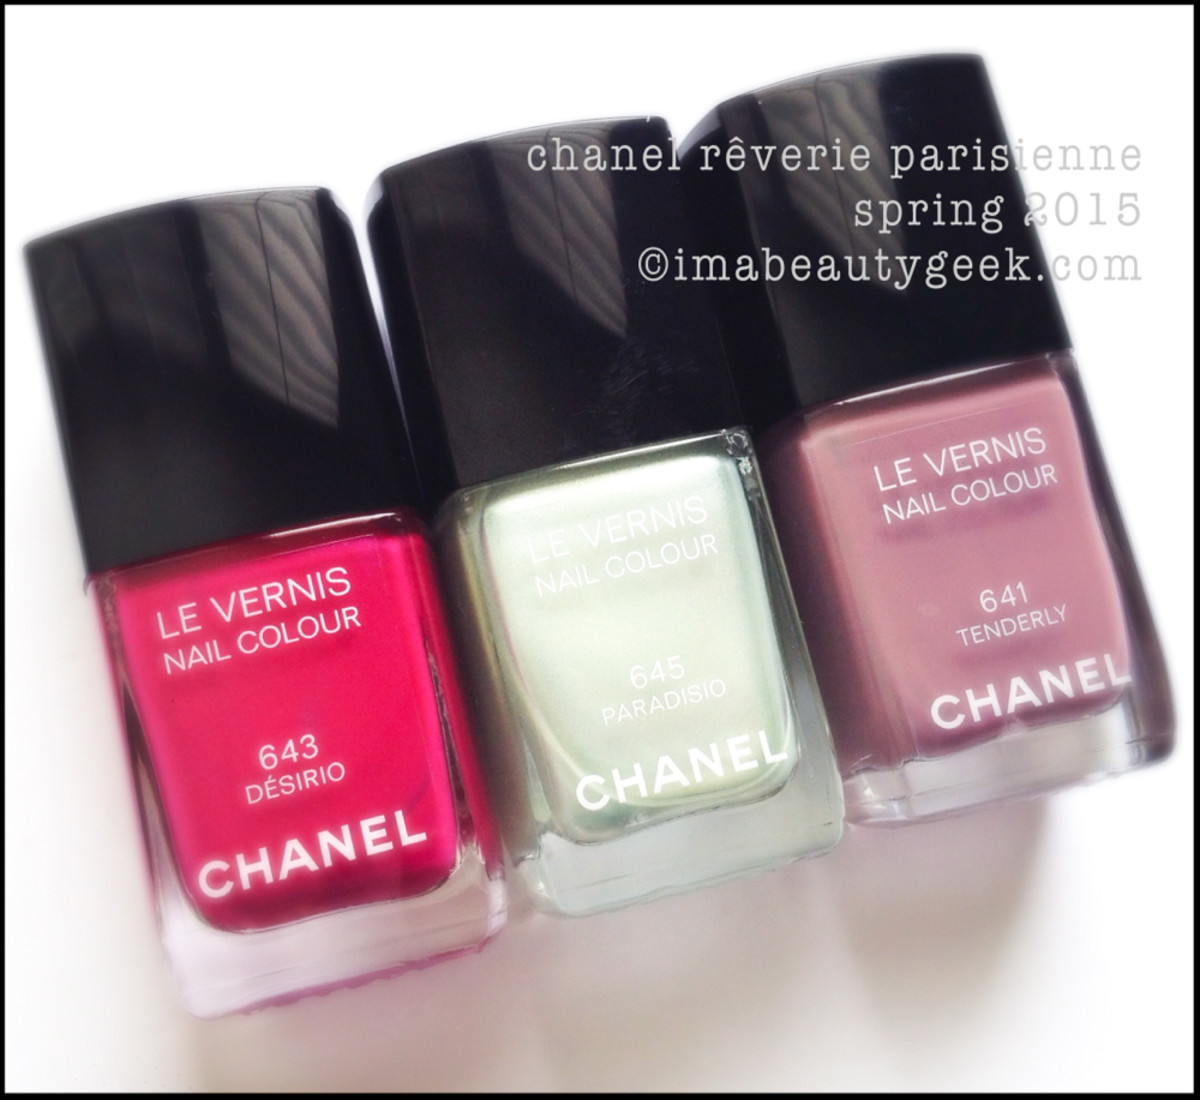 Chanel Reverie Parisienne Vernis Spring 2015